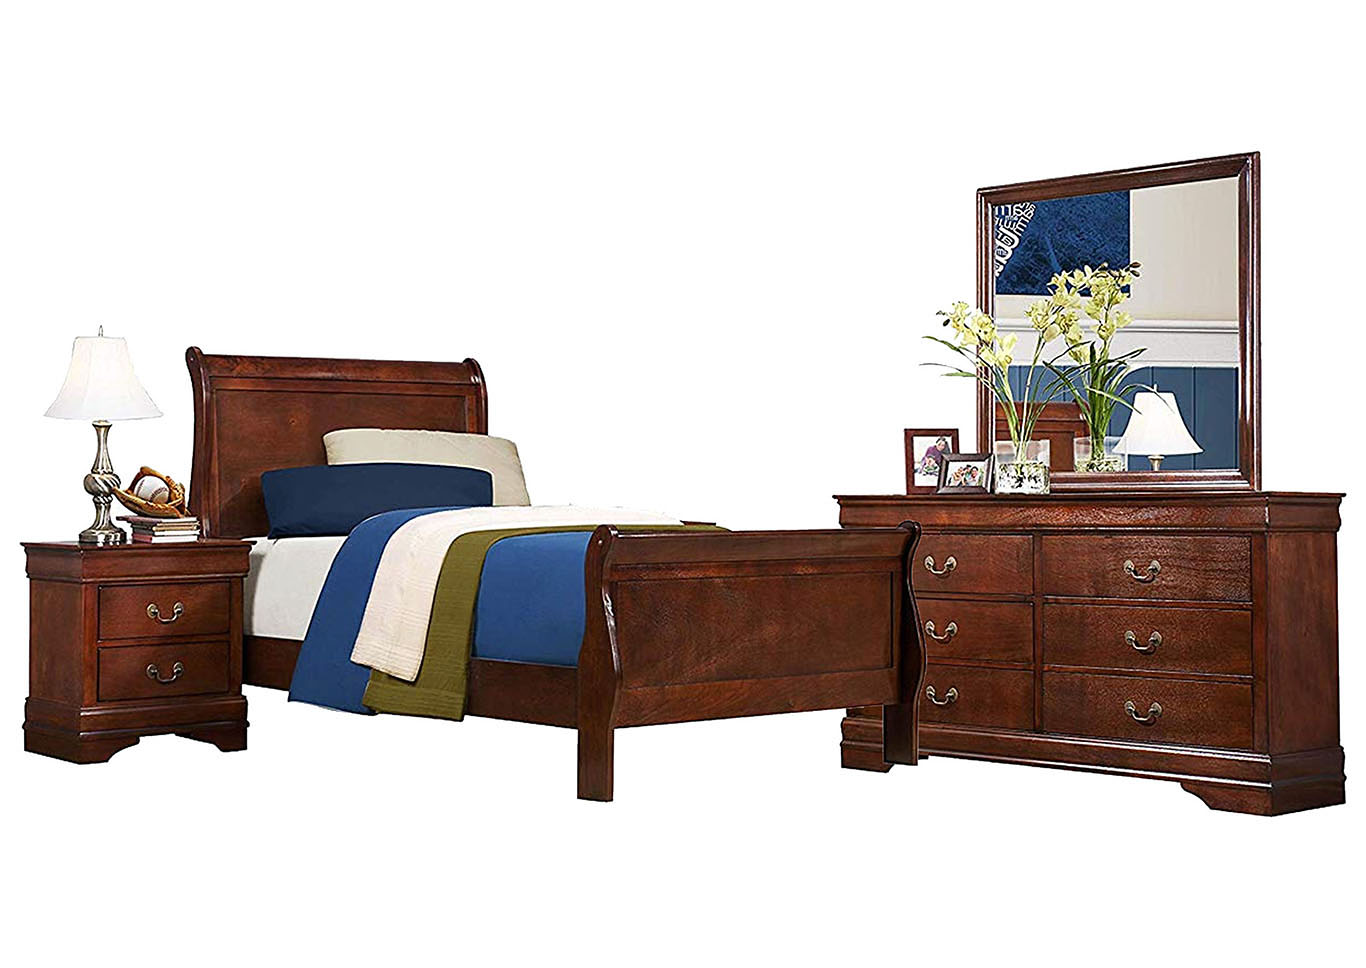 LOUIS PHILIP CHERRY TWIN BEDROOM SET,CROWN MARK INT.